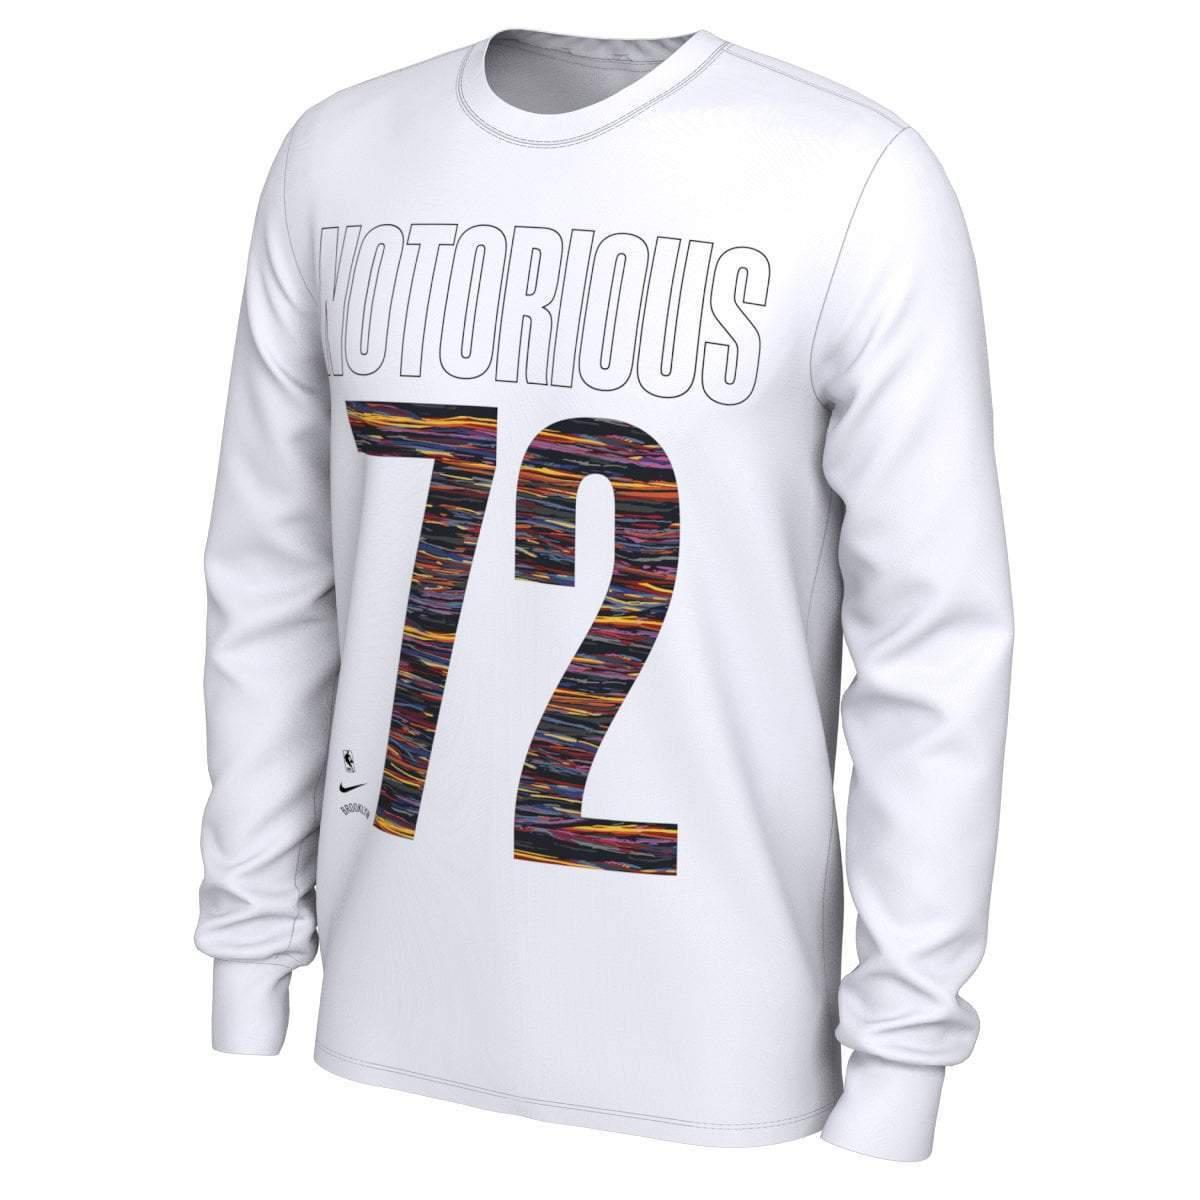 Brooklyn Nets Nike Music Collection Notorious #72 Graphic Long Sleeve Tee - White - NetsStore.com